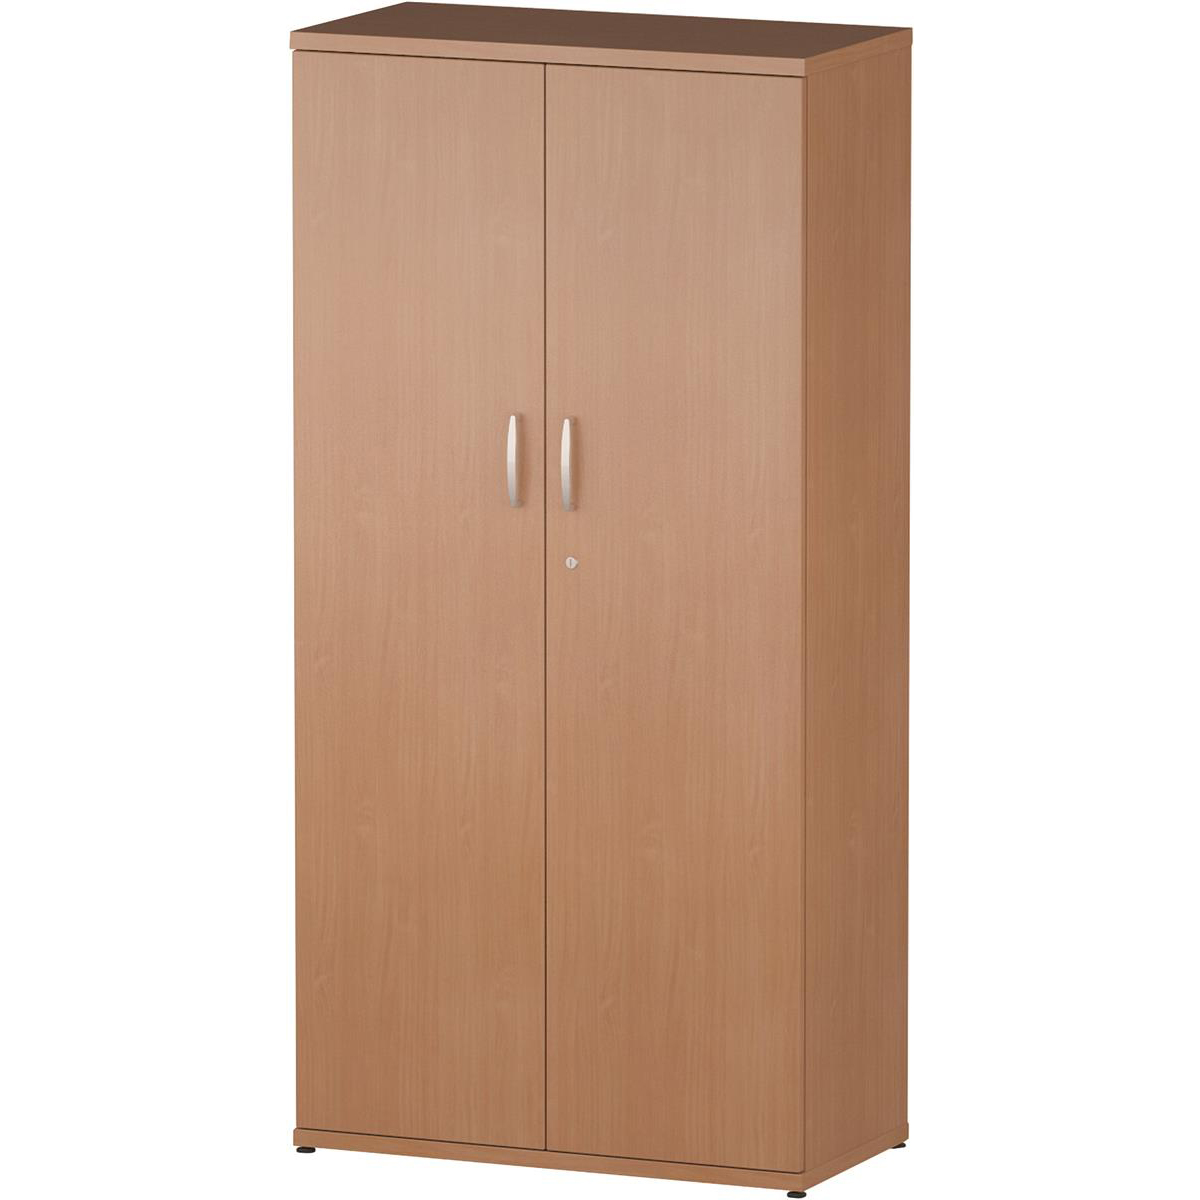 Trexus Office High Cupboard 800x400x1600mm 3 Shelves Beech Ref S00003